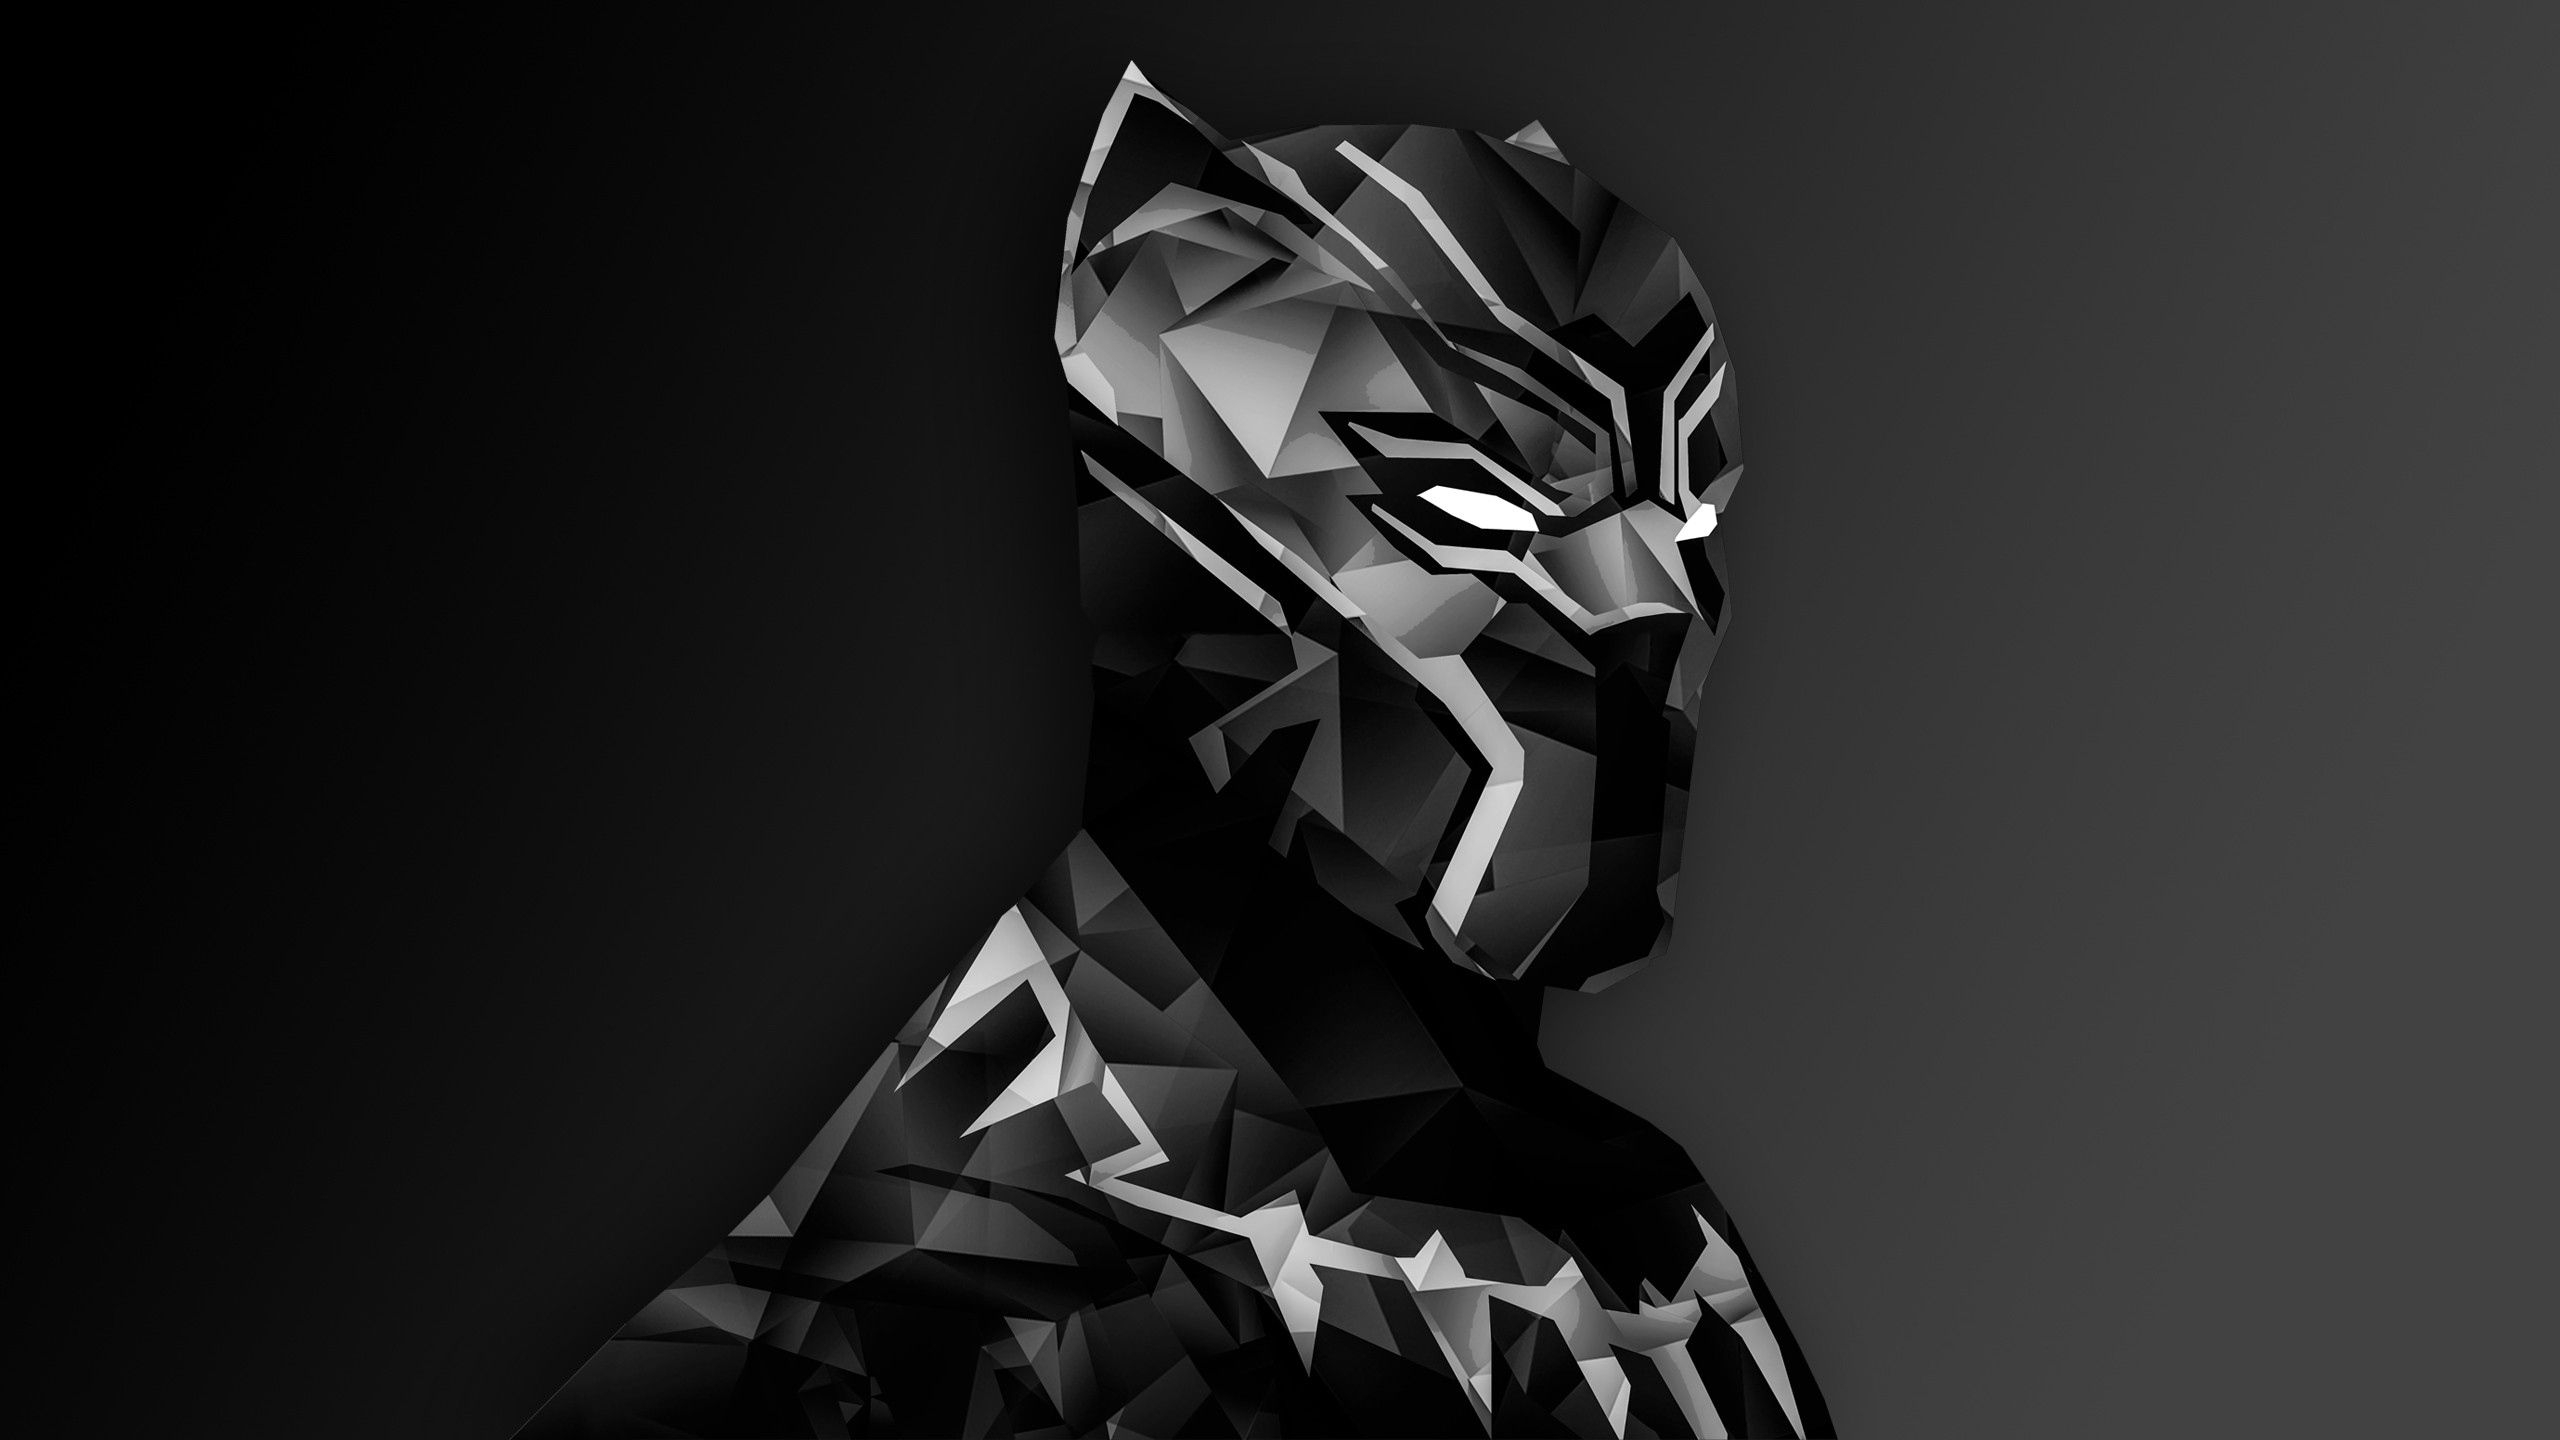 black panther marvel hd wallpapers backgrounds wallpaper | hd